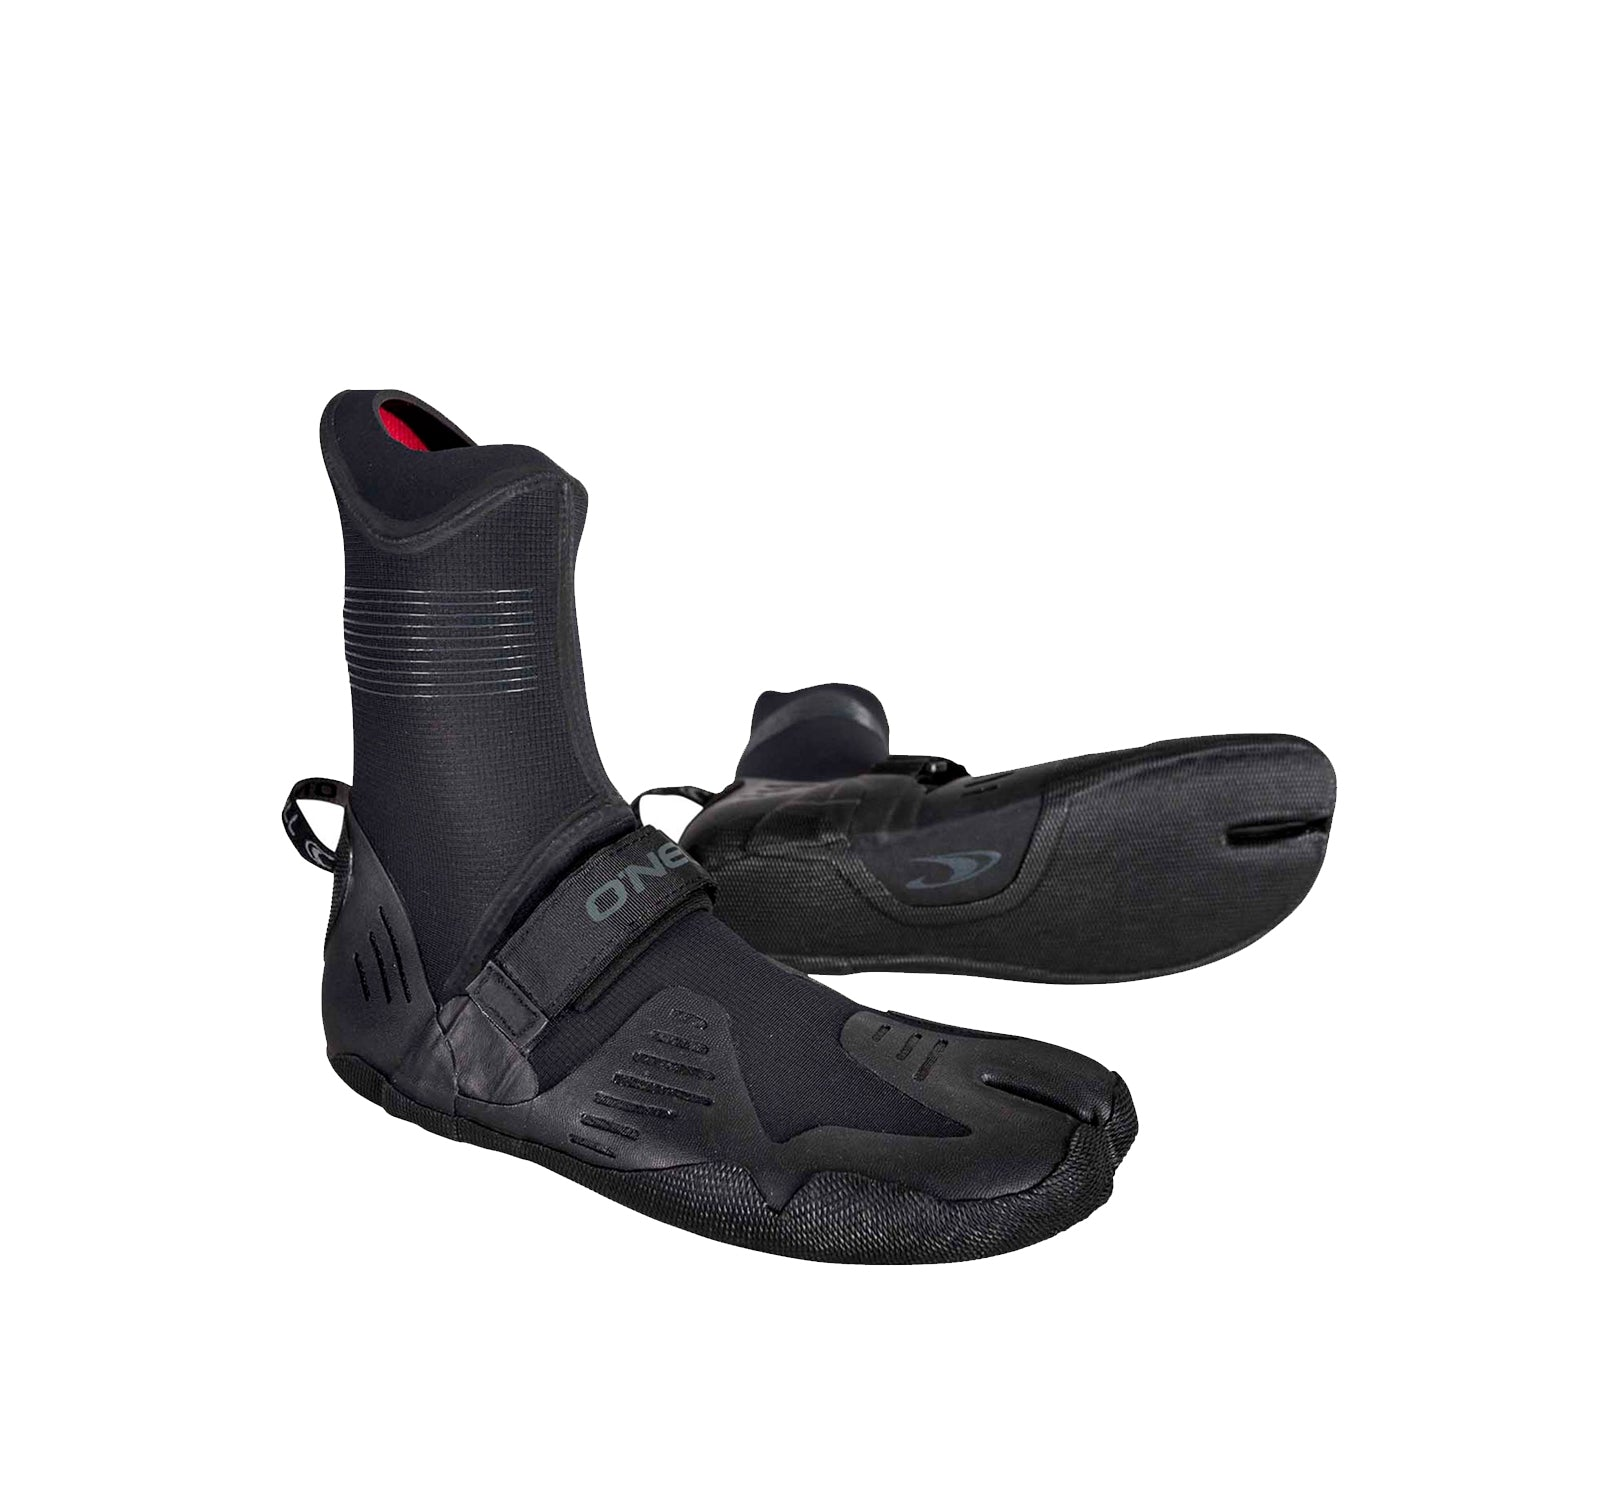 O'Neill Psycho Tech 3/2 Men's Split Toe Wetsuit Booties